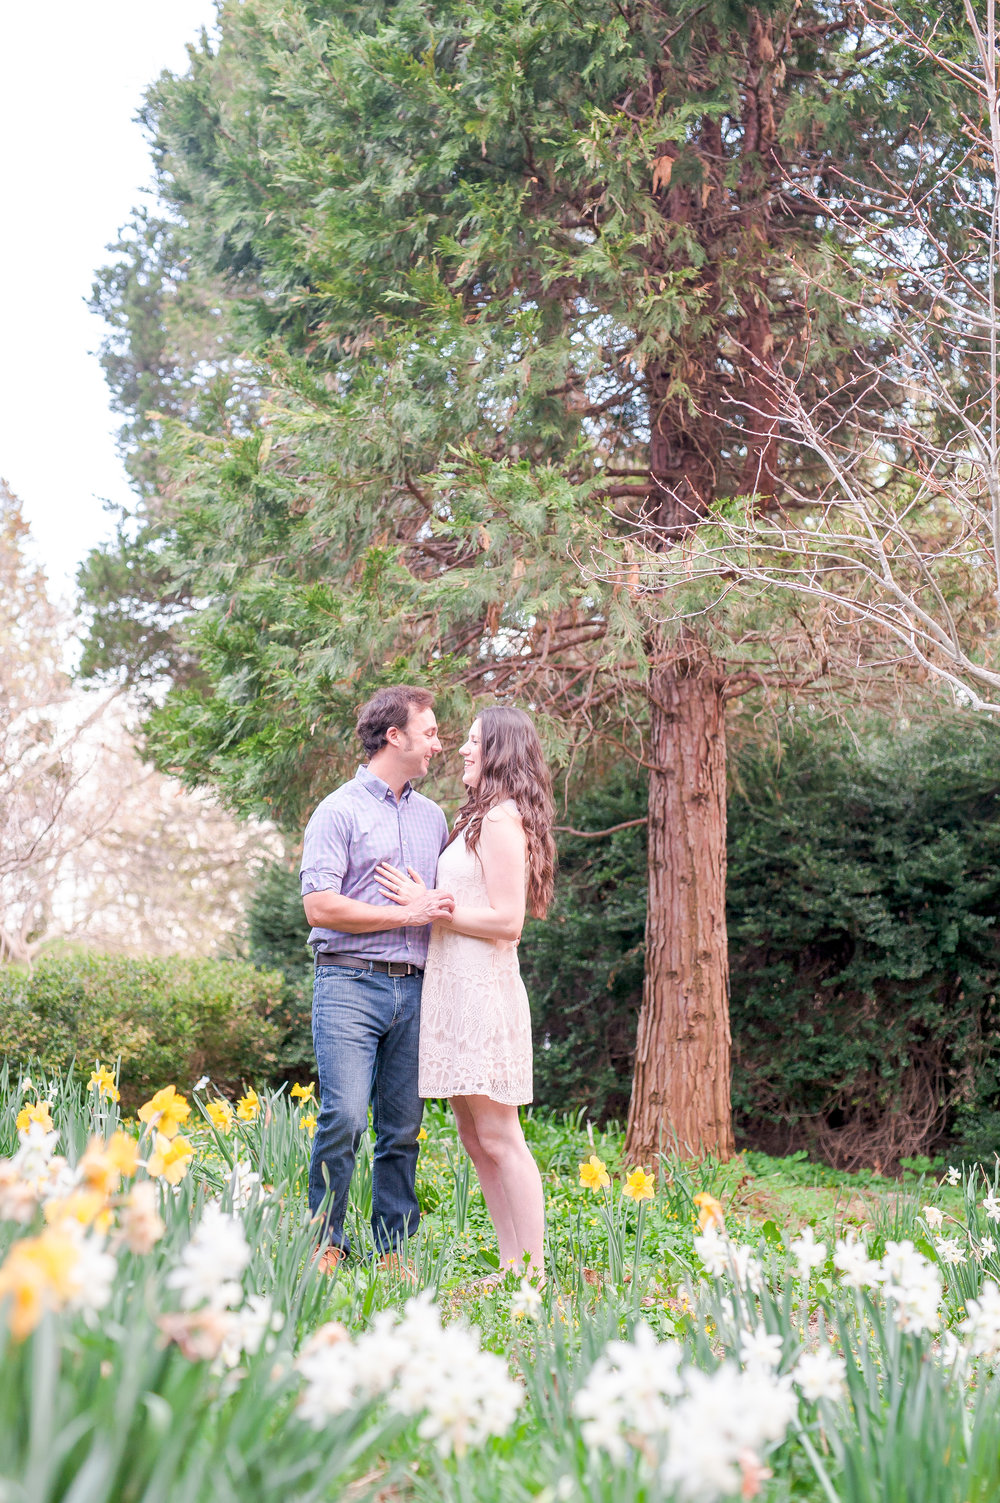 Sean and Nicole Beverly spring blossom engagement-25.jpg